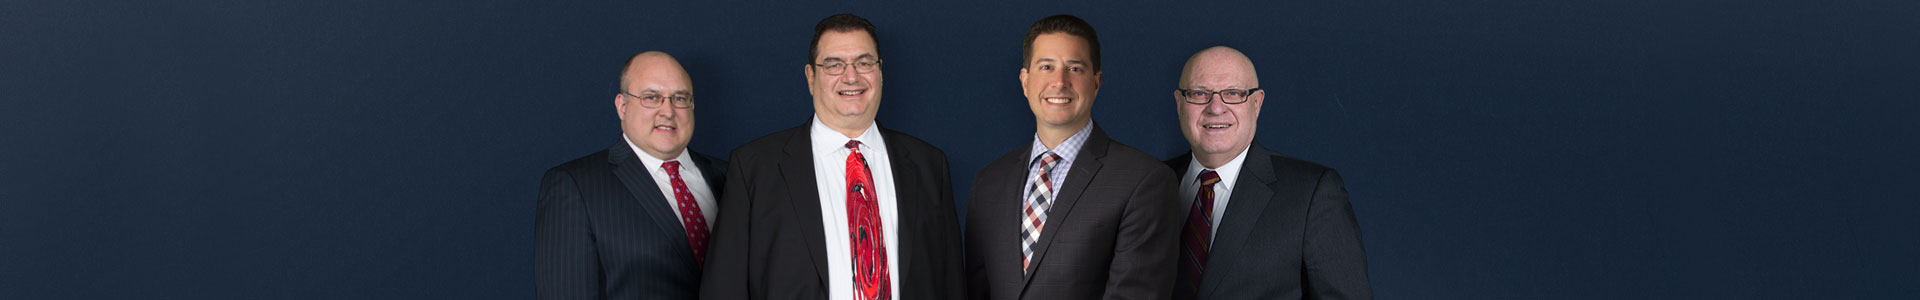 DuPage County Attorneys